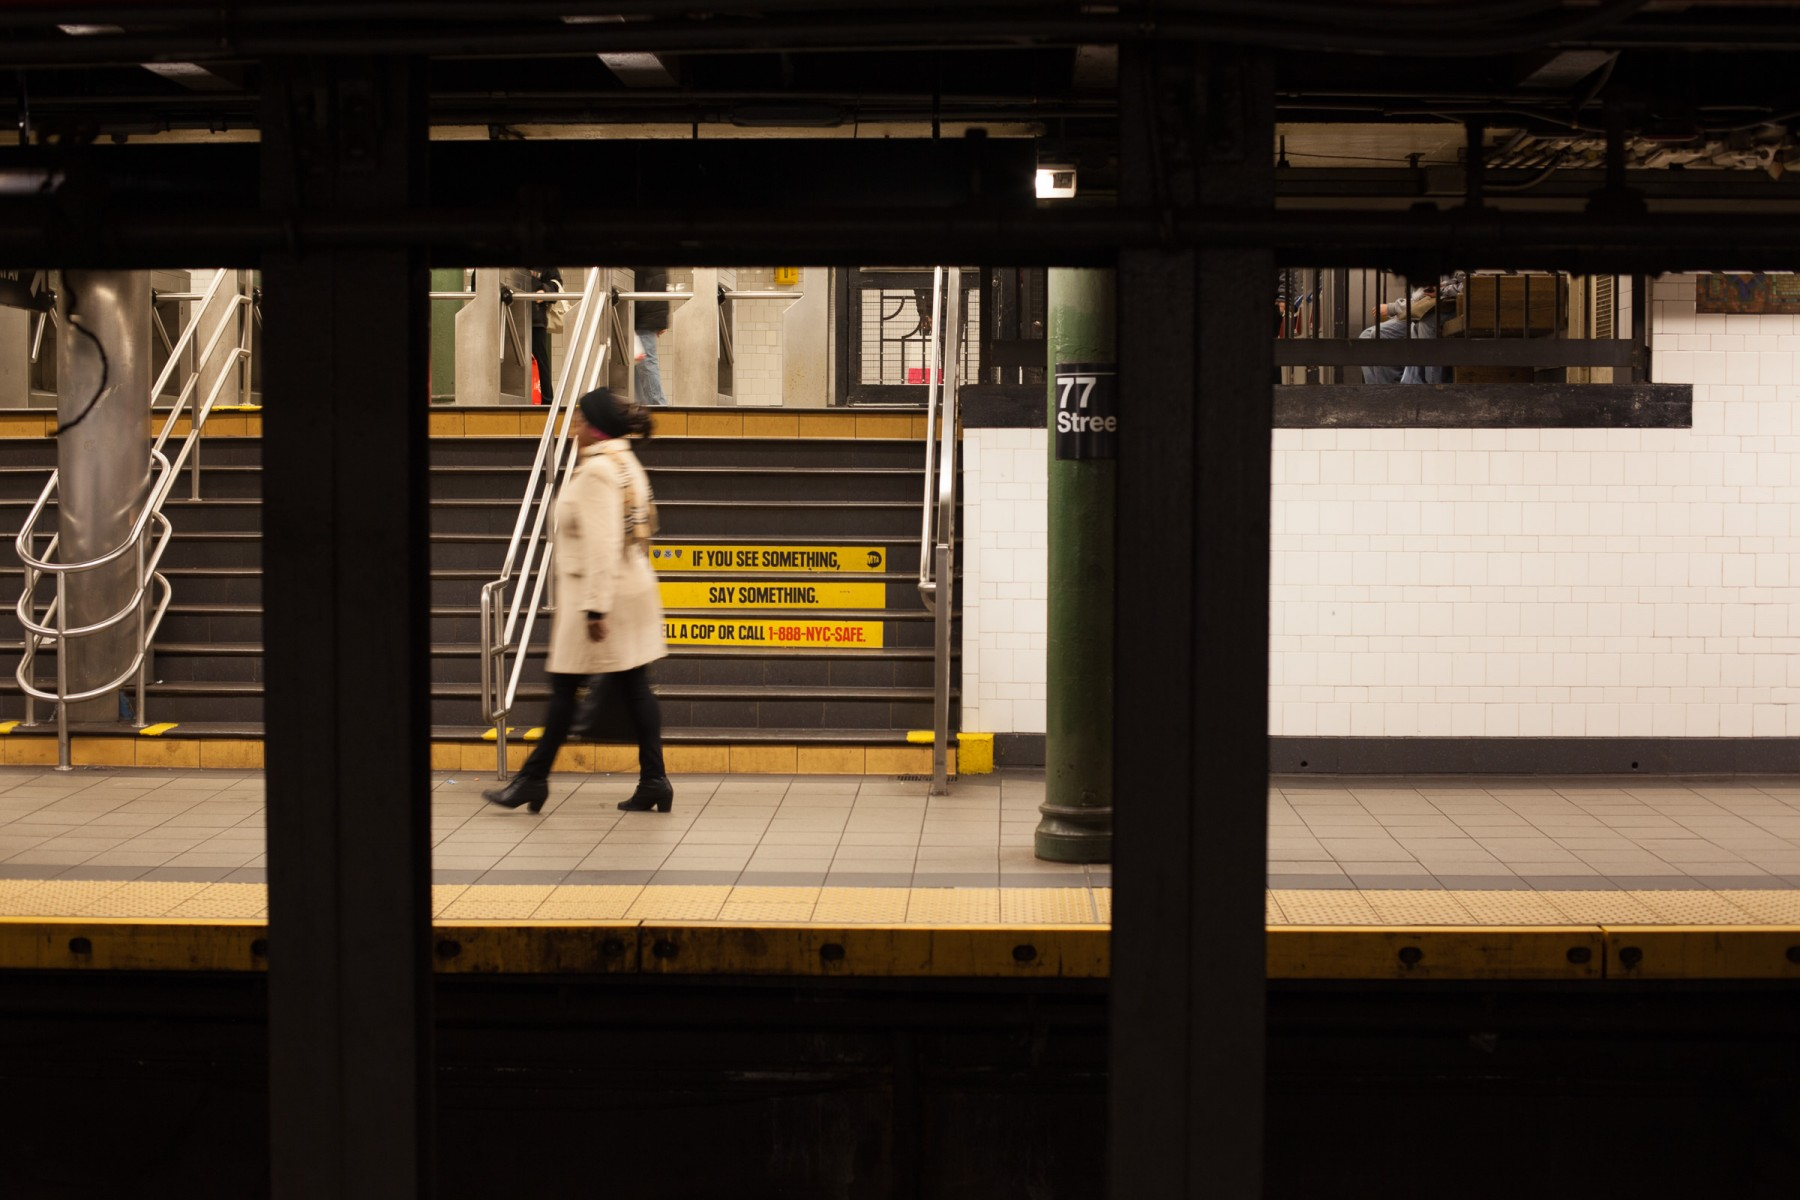 The island of Manhattan was originally a swamp and the city remains constantly at risk of flooding. Even on days without rain about 13 million gallons of water are pumped out of the drainage systems servicing the city's subway.